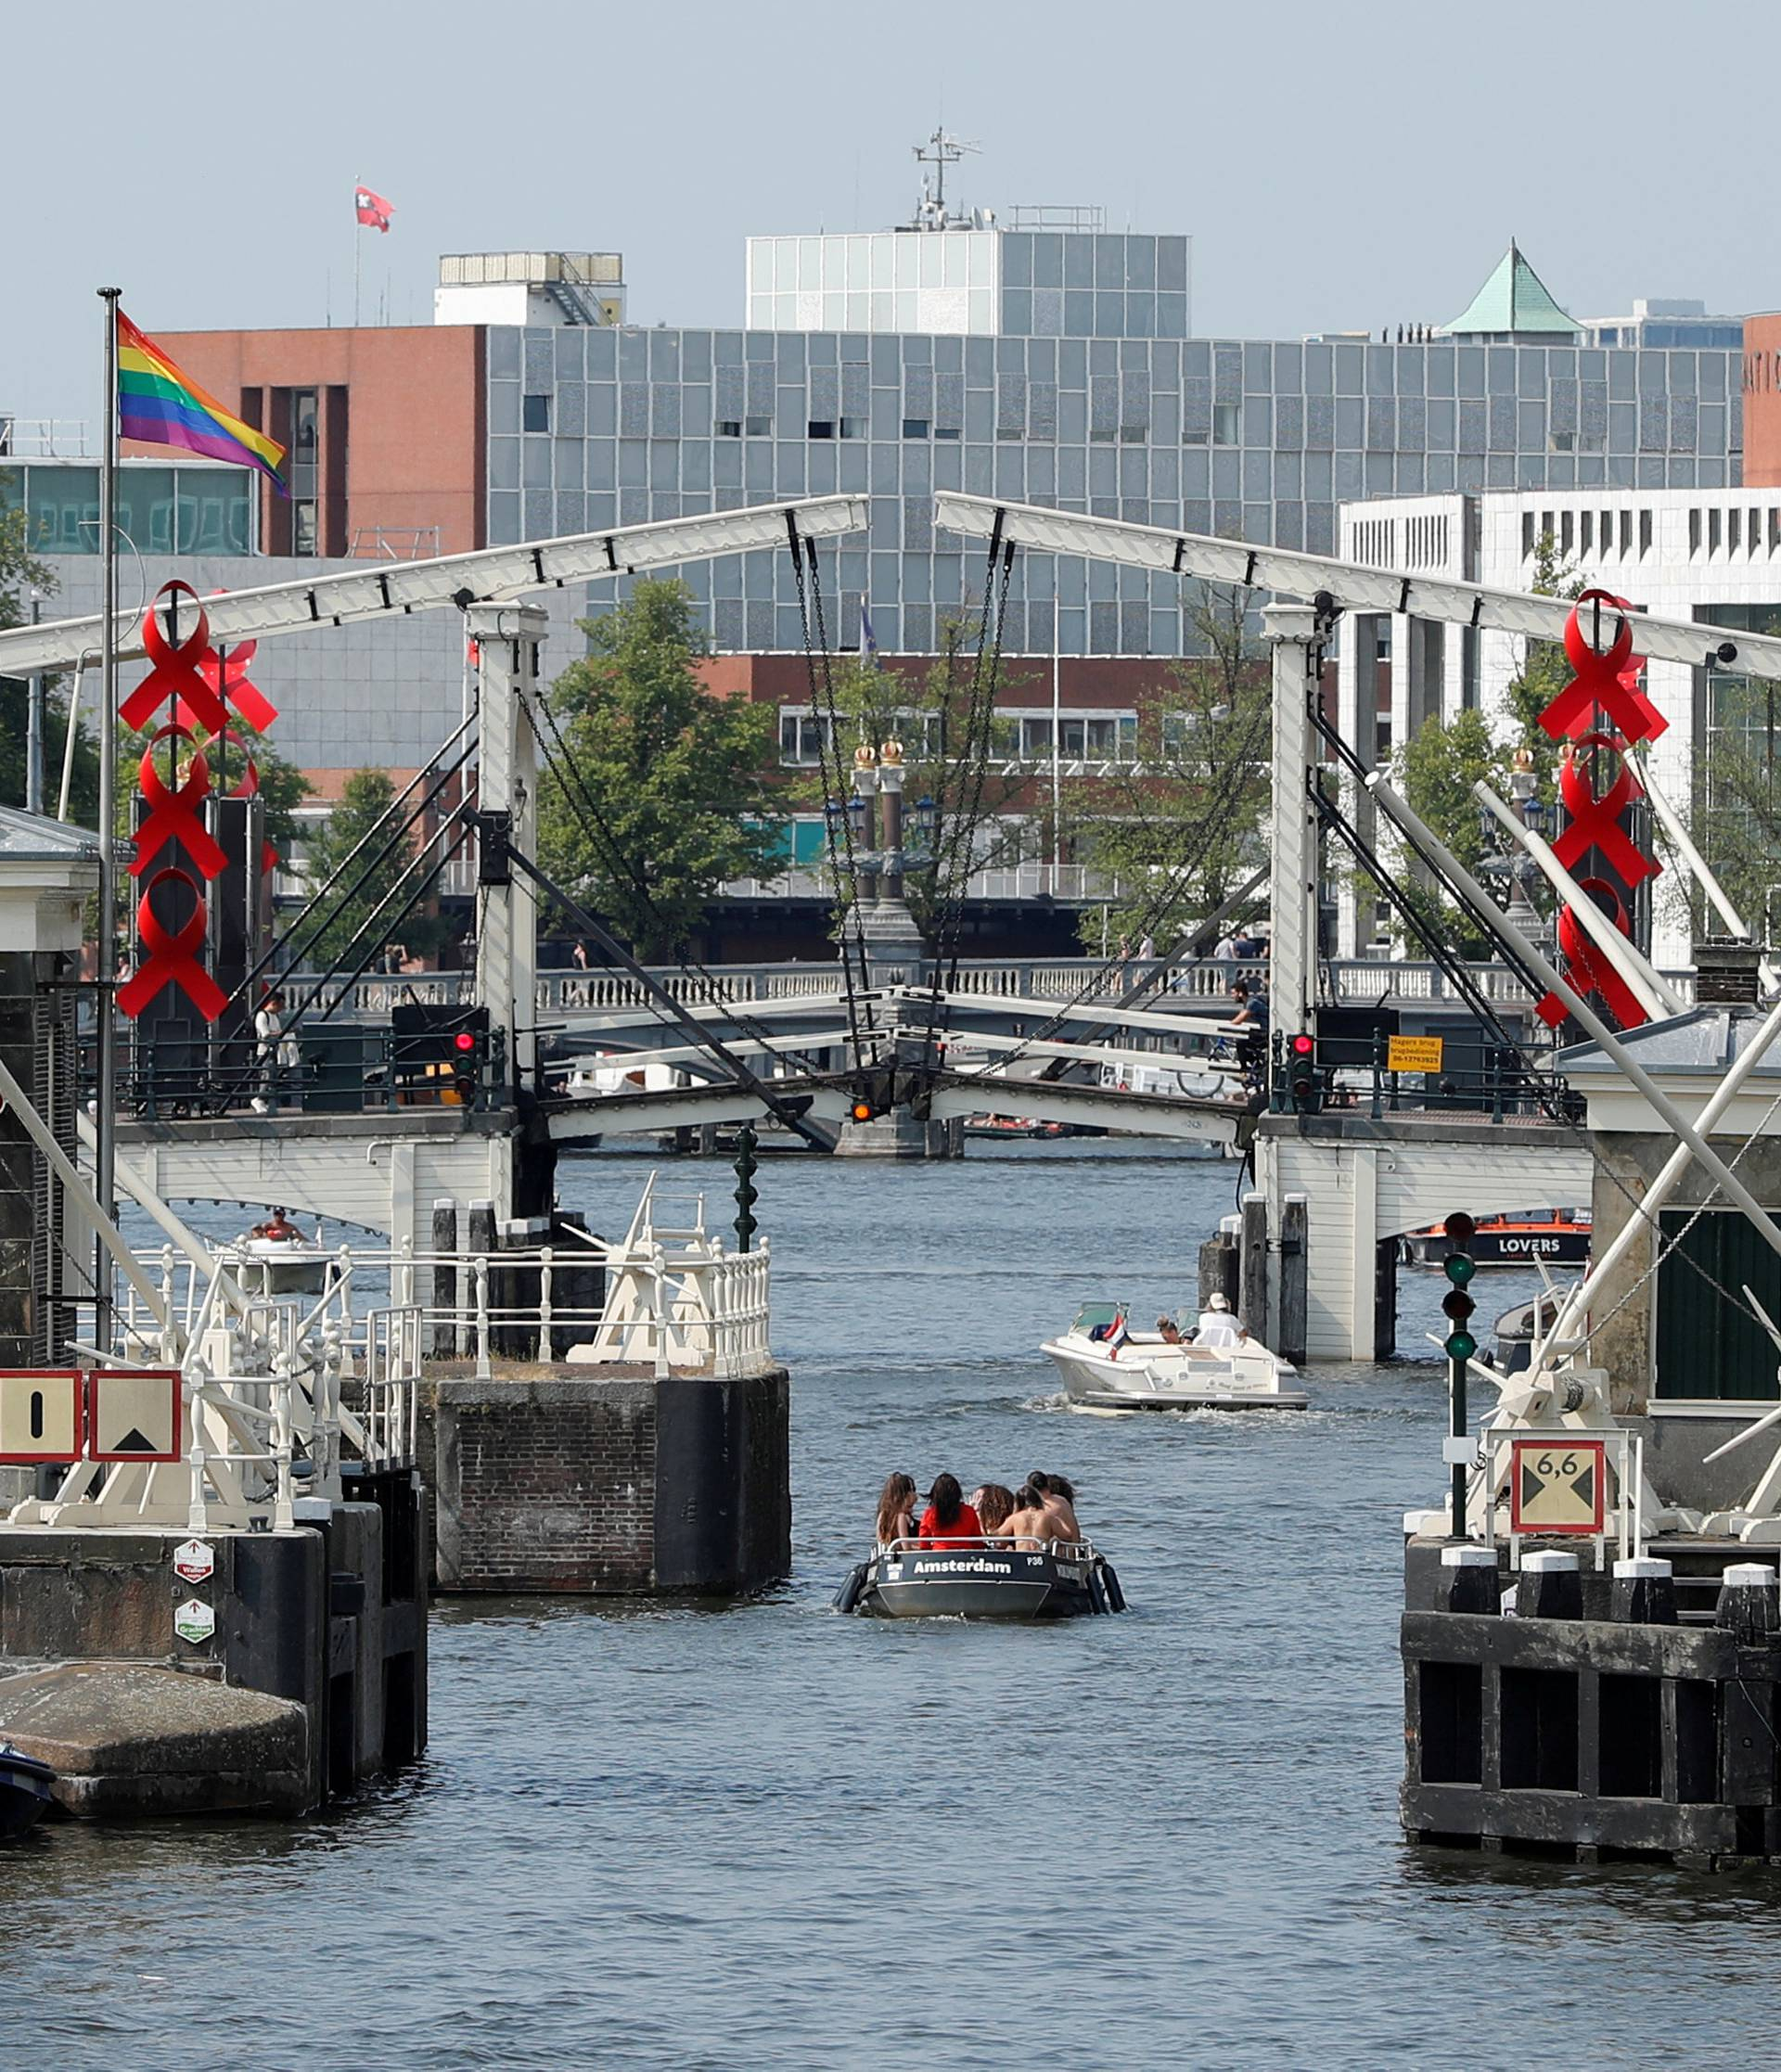 FILE PHOTO: A boat cruises past a bridge on a canal in Amsterdam